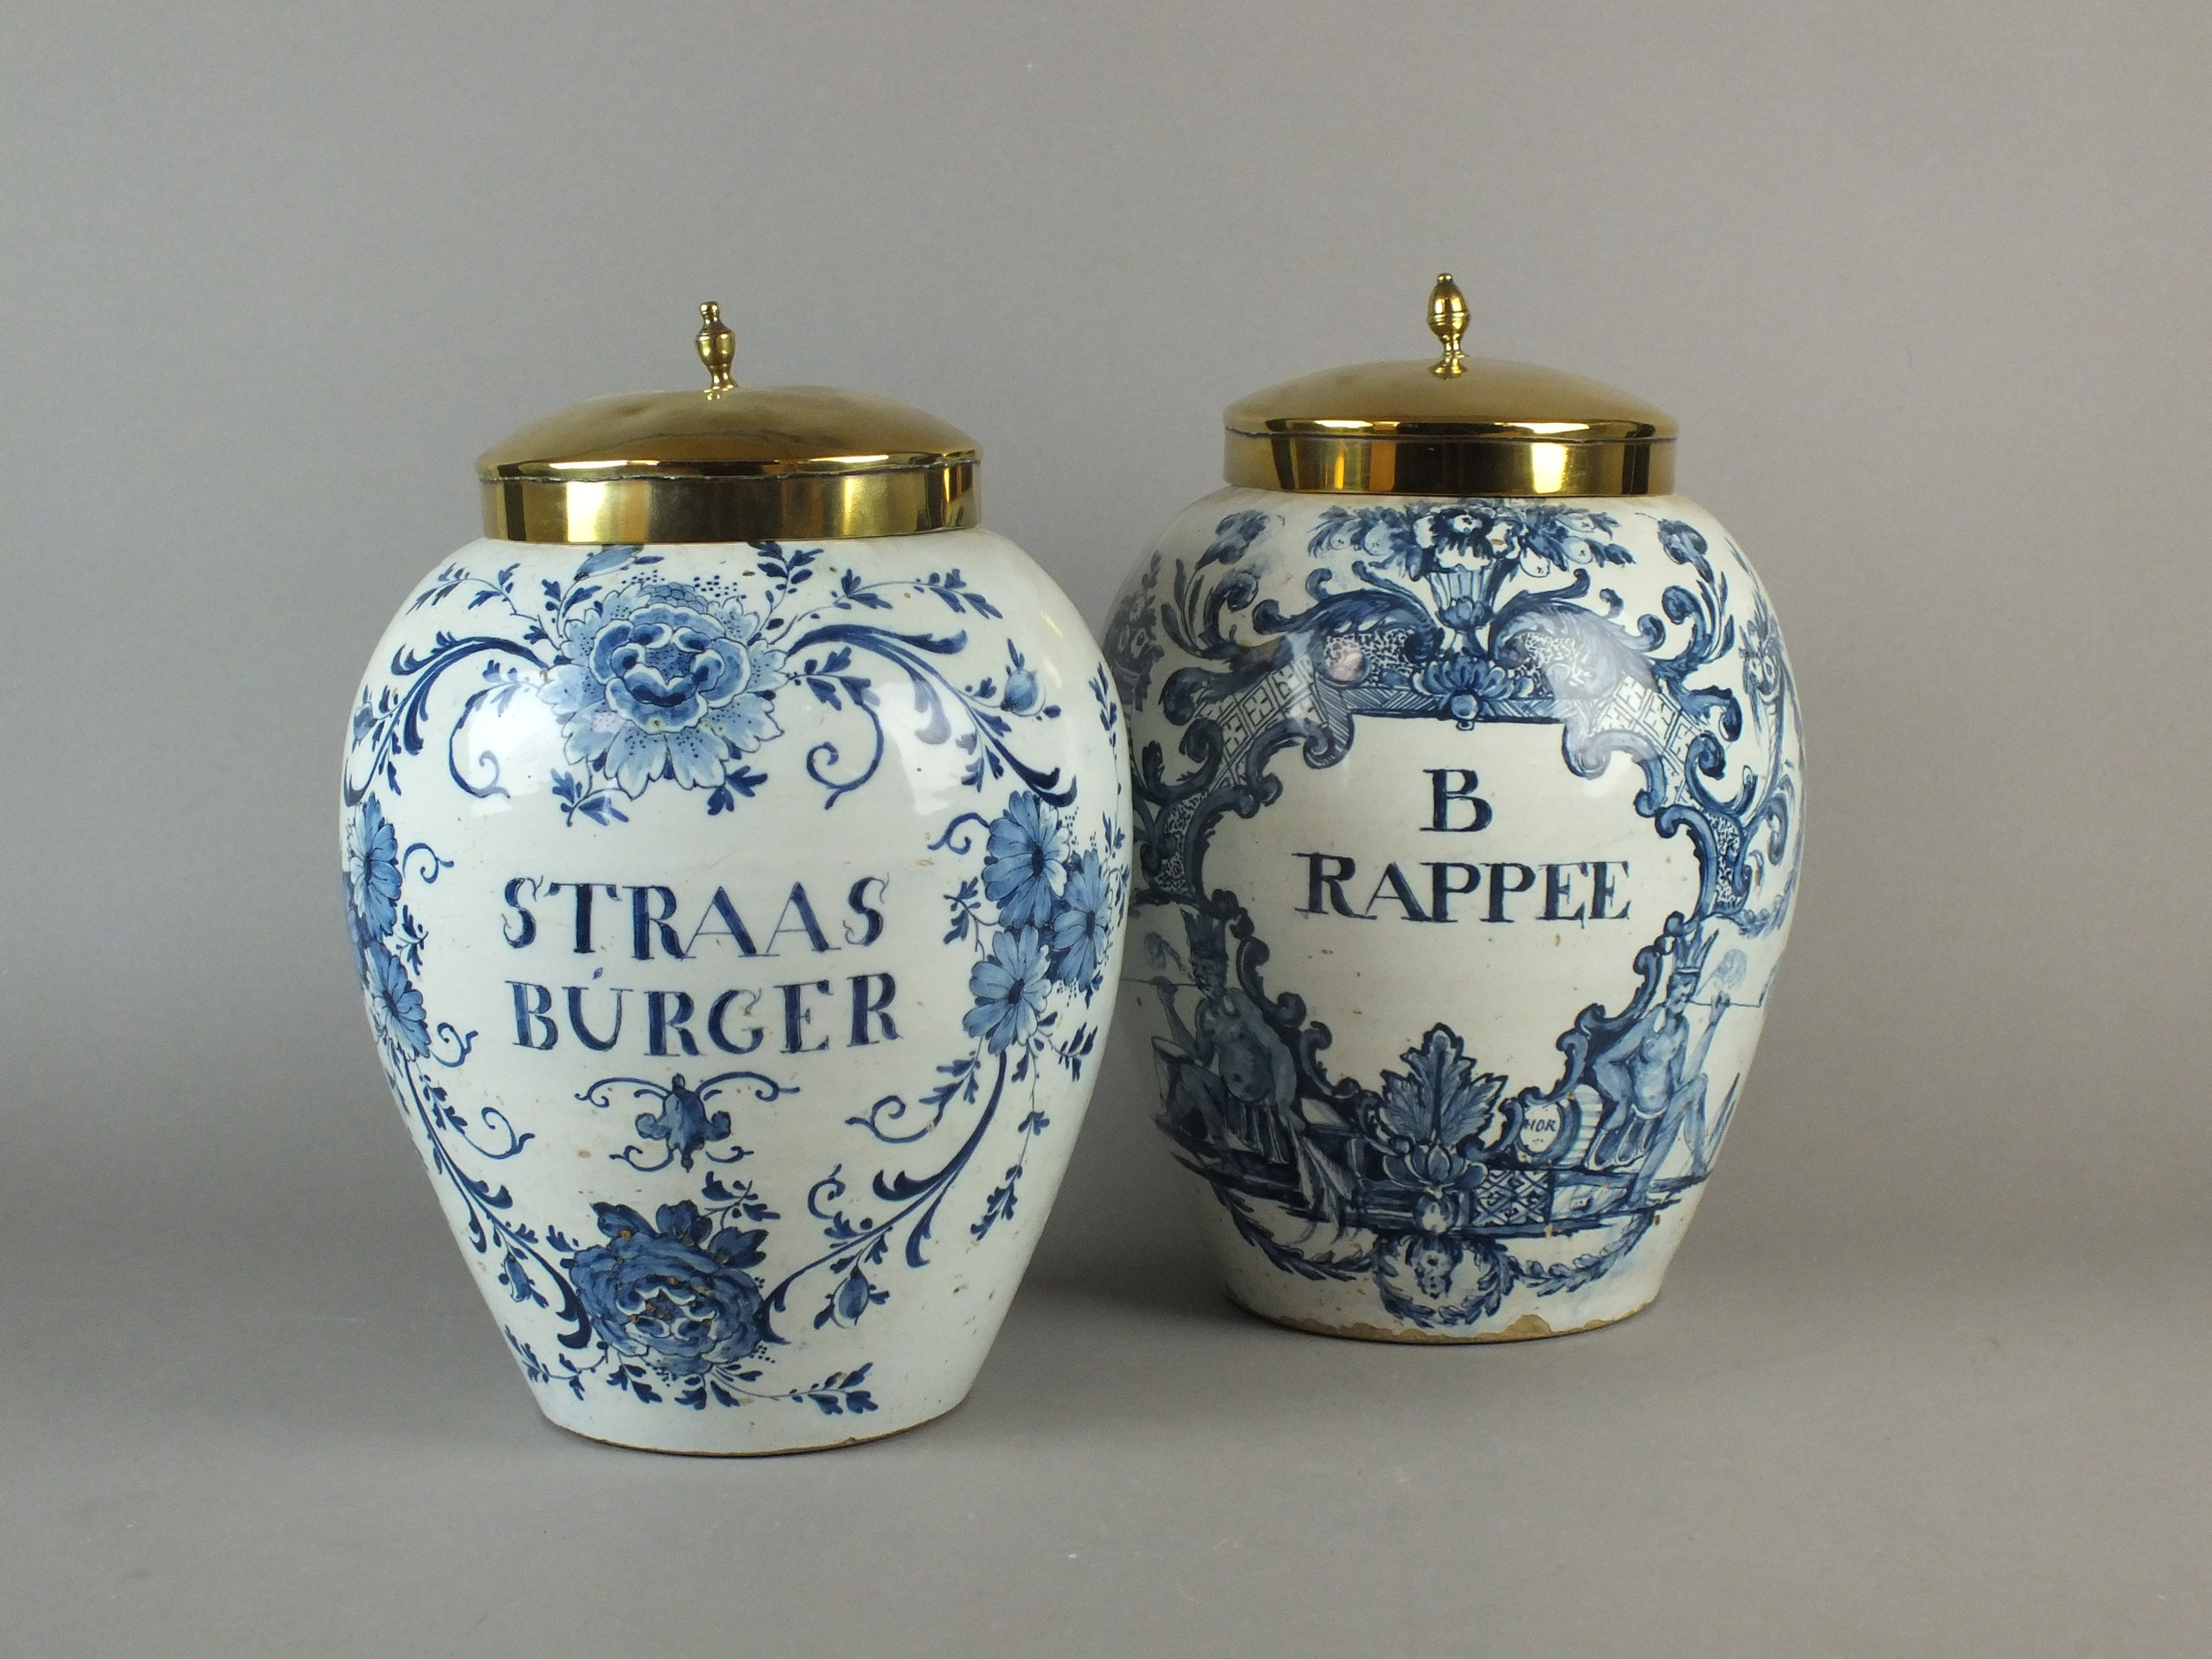 Two 18th century delft dry drugs jars Two large 18th century delft dry drug jars with copper covers, decorated in blue with inscriptions 'Straas Burger' and 'B Rapee' reserved against foliate grounds, painted blue PMV marks for Pieter Van Marksveld De Grieksche, 34cm high  Sold for £1,600